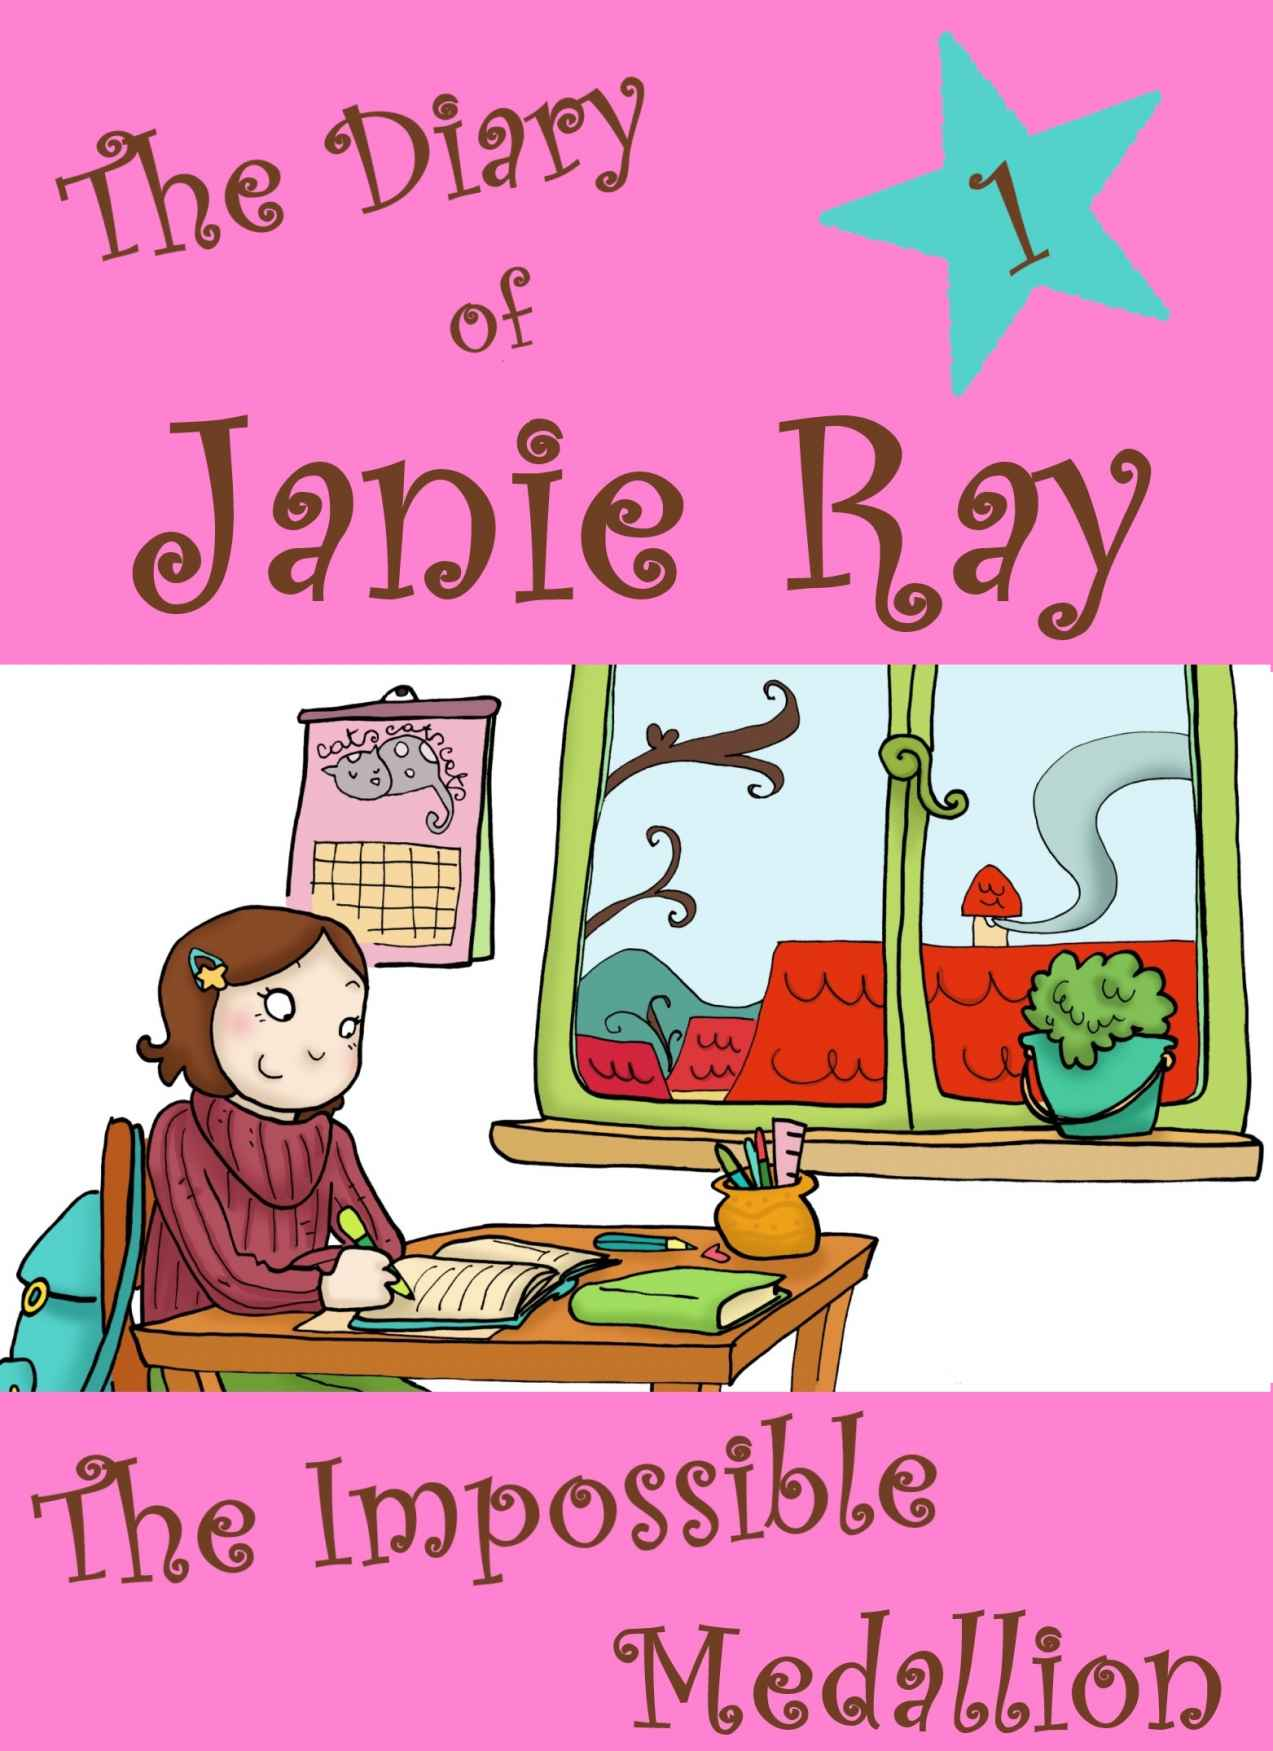 The Impossible Medallion (a tween time-travel story for ages 9-12) (The Diary of Janie Ray) by Lila Segal